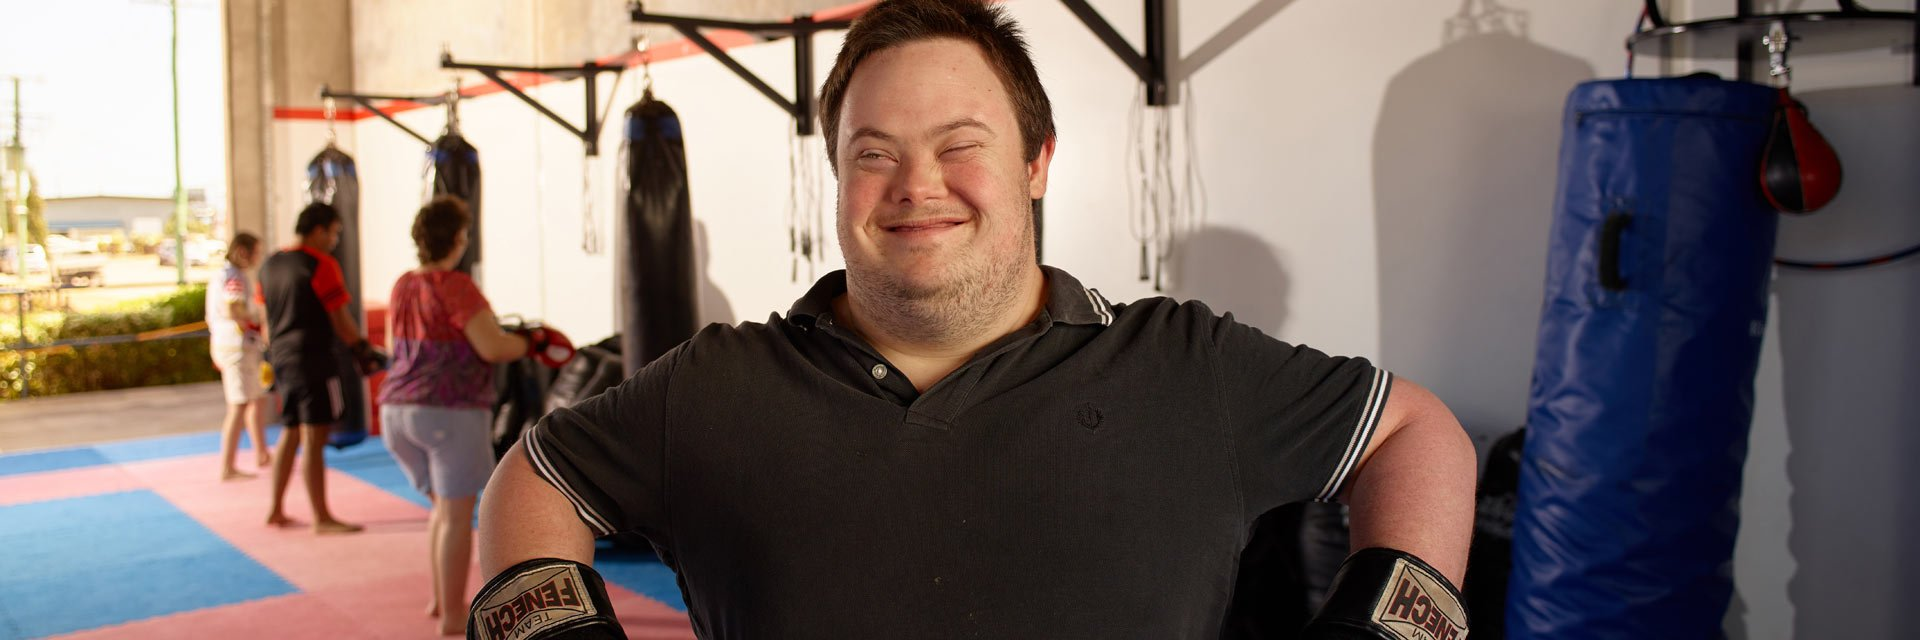 An Aruma customer with Down syndrome at the gym wearing boxing gloves